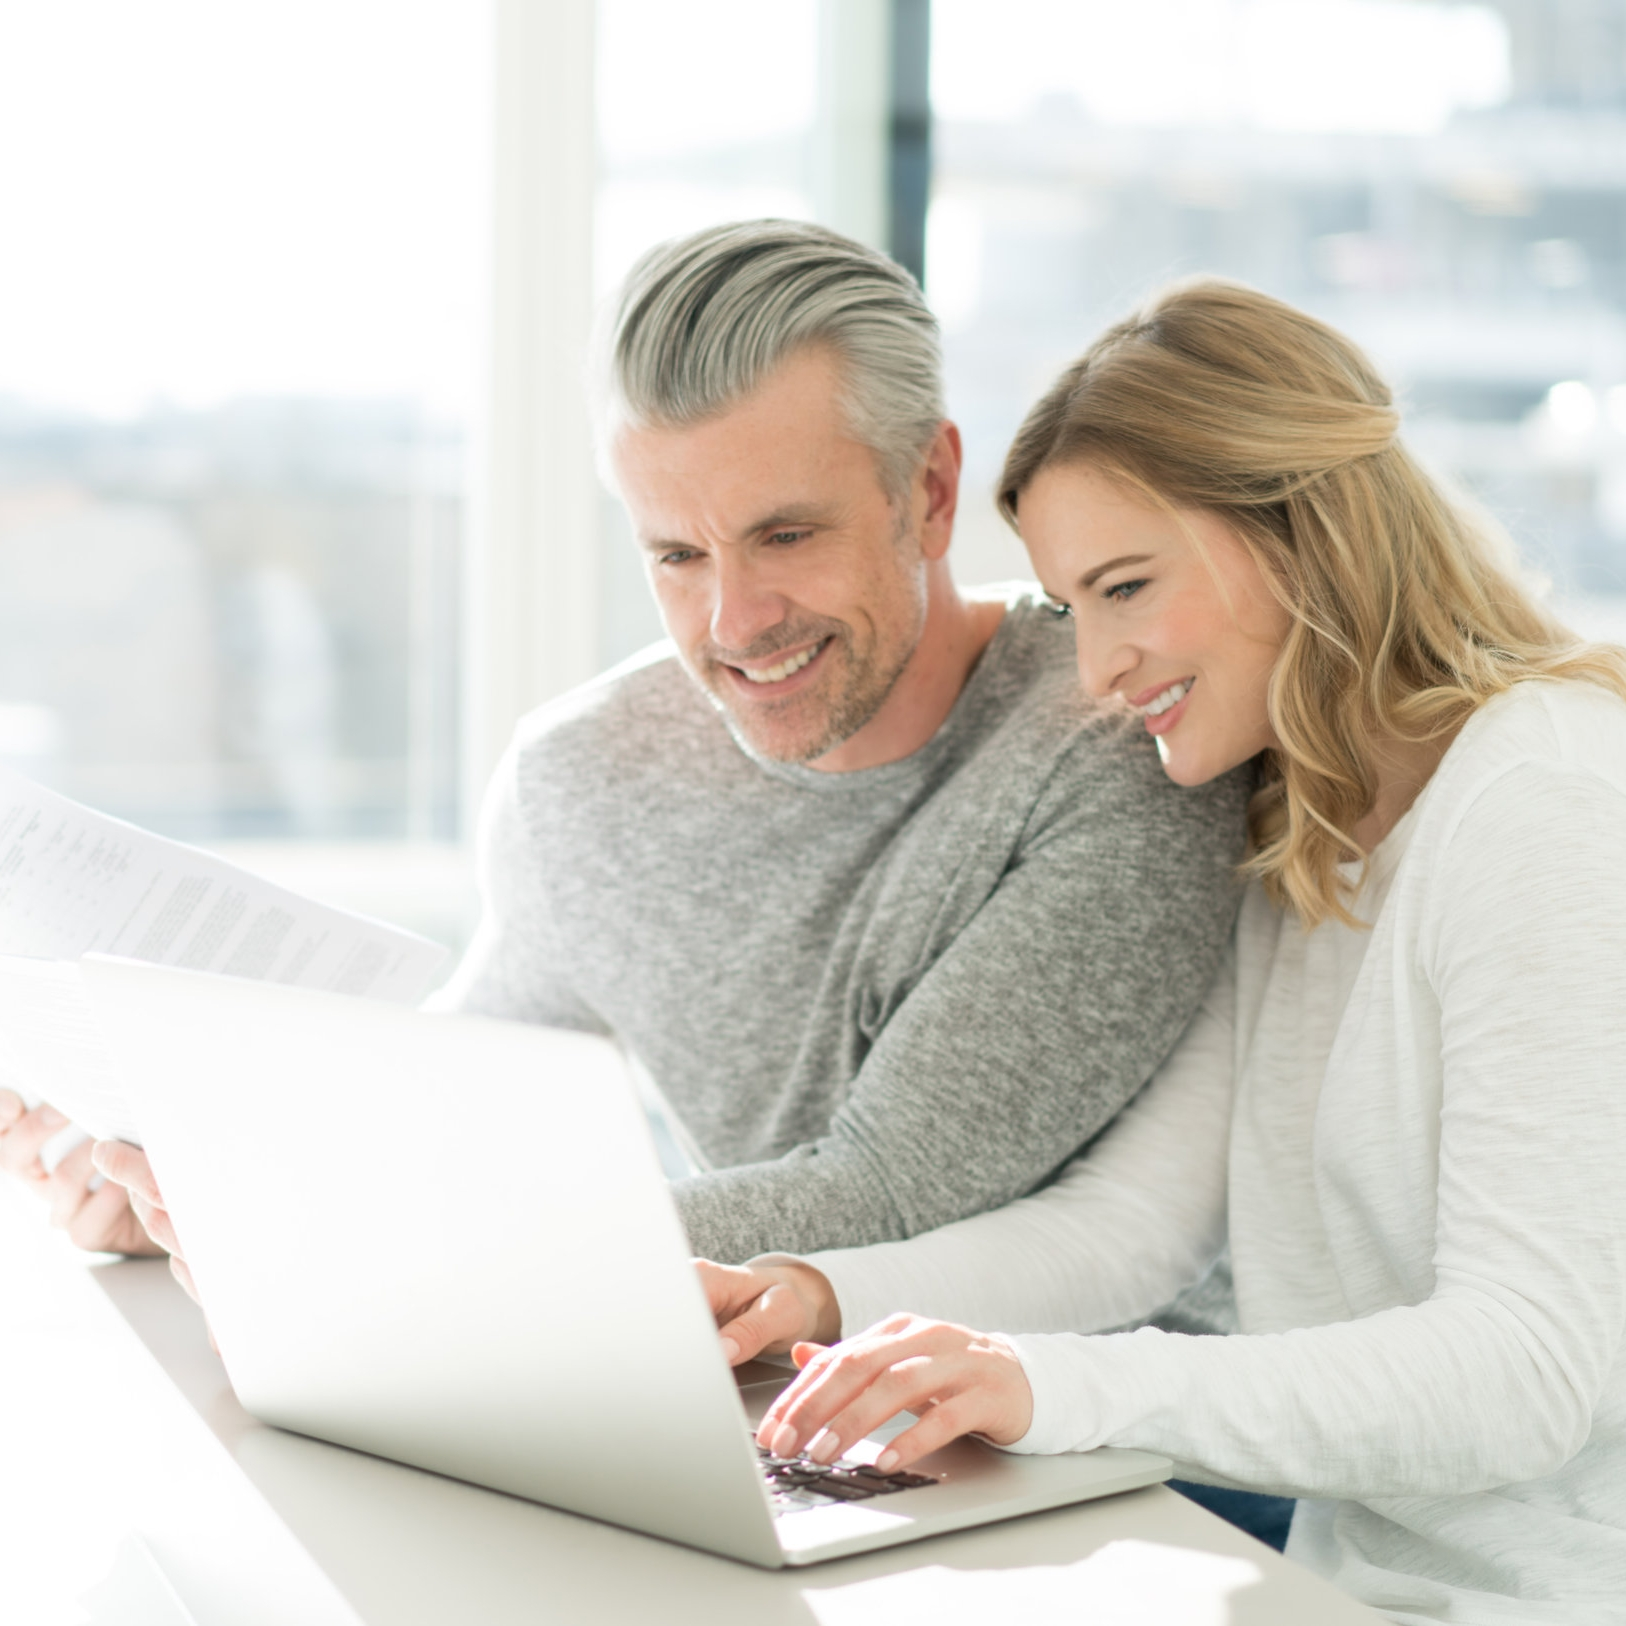 Couple-paying-bills-online-at-home-516182396_7124x4633.jpeg